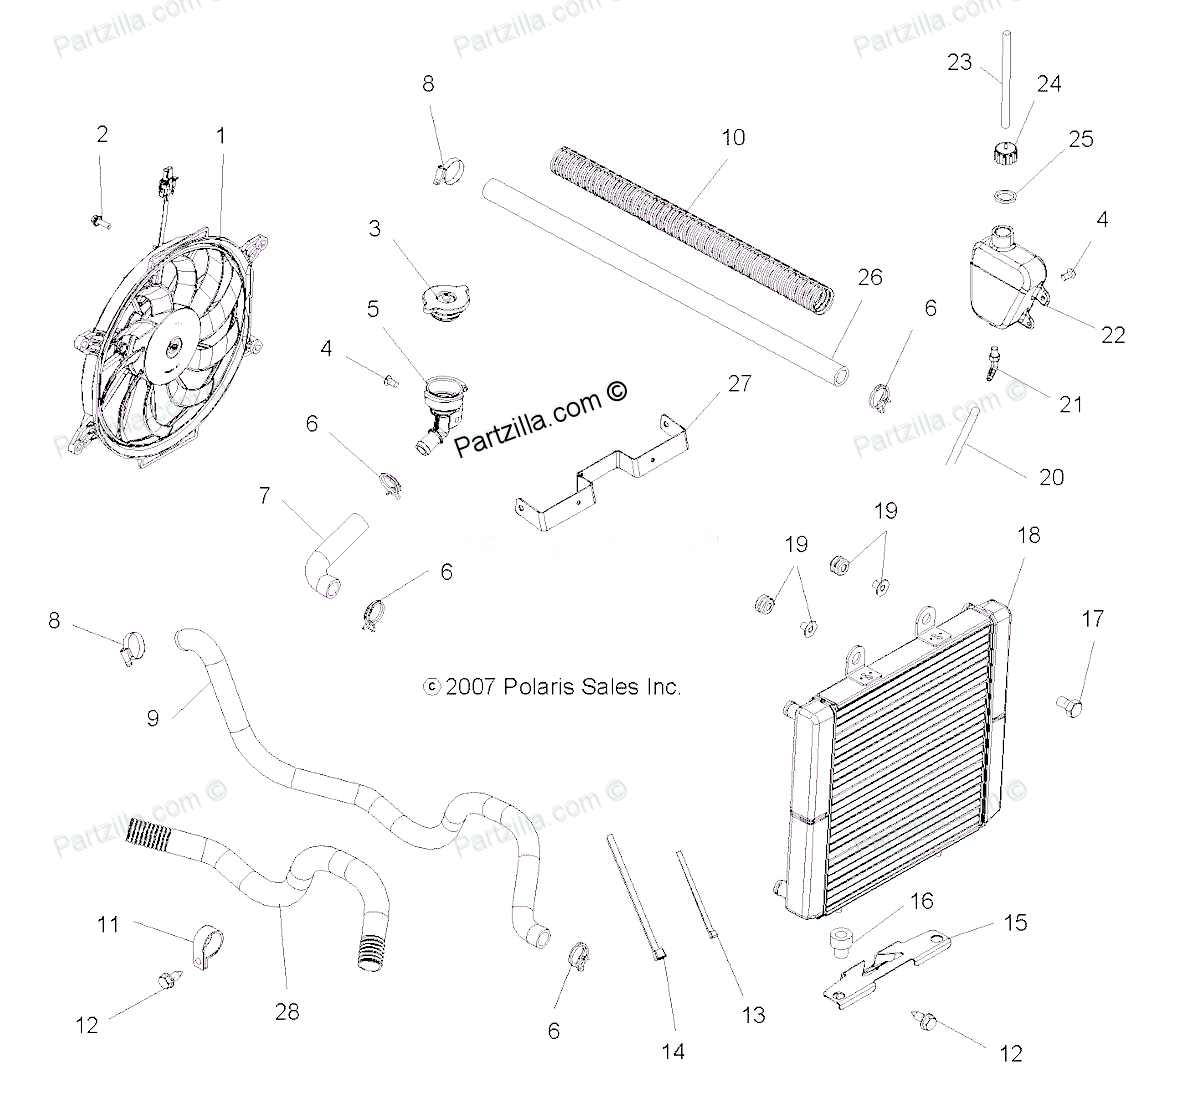 Wiring Diagram For Polaris Sportsman 500 Ho